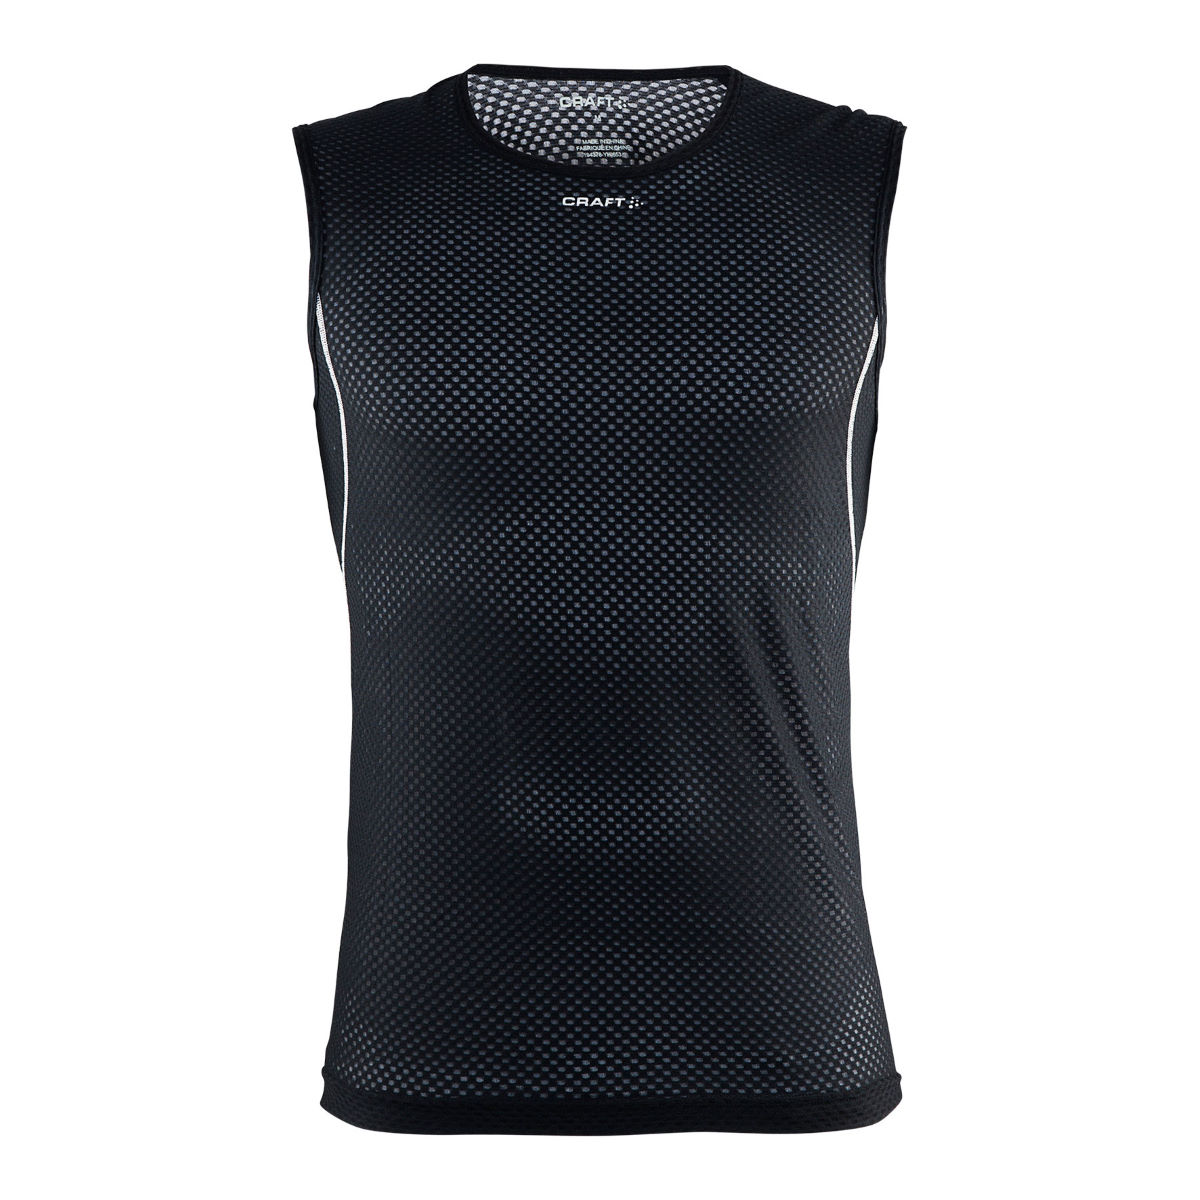 Maillot de corps Craft Cool Superlight (maille, sans manches) - M